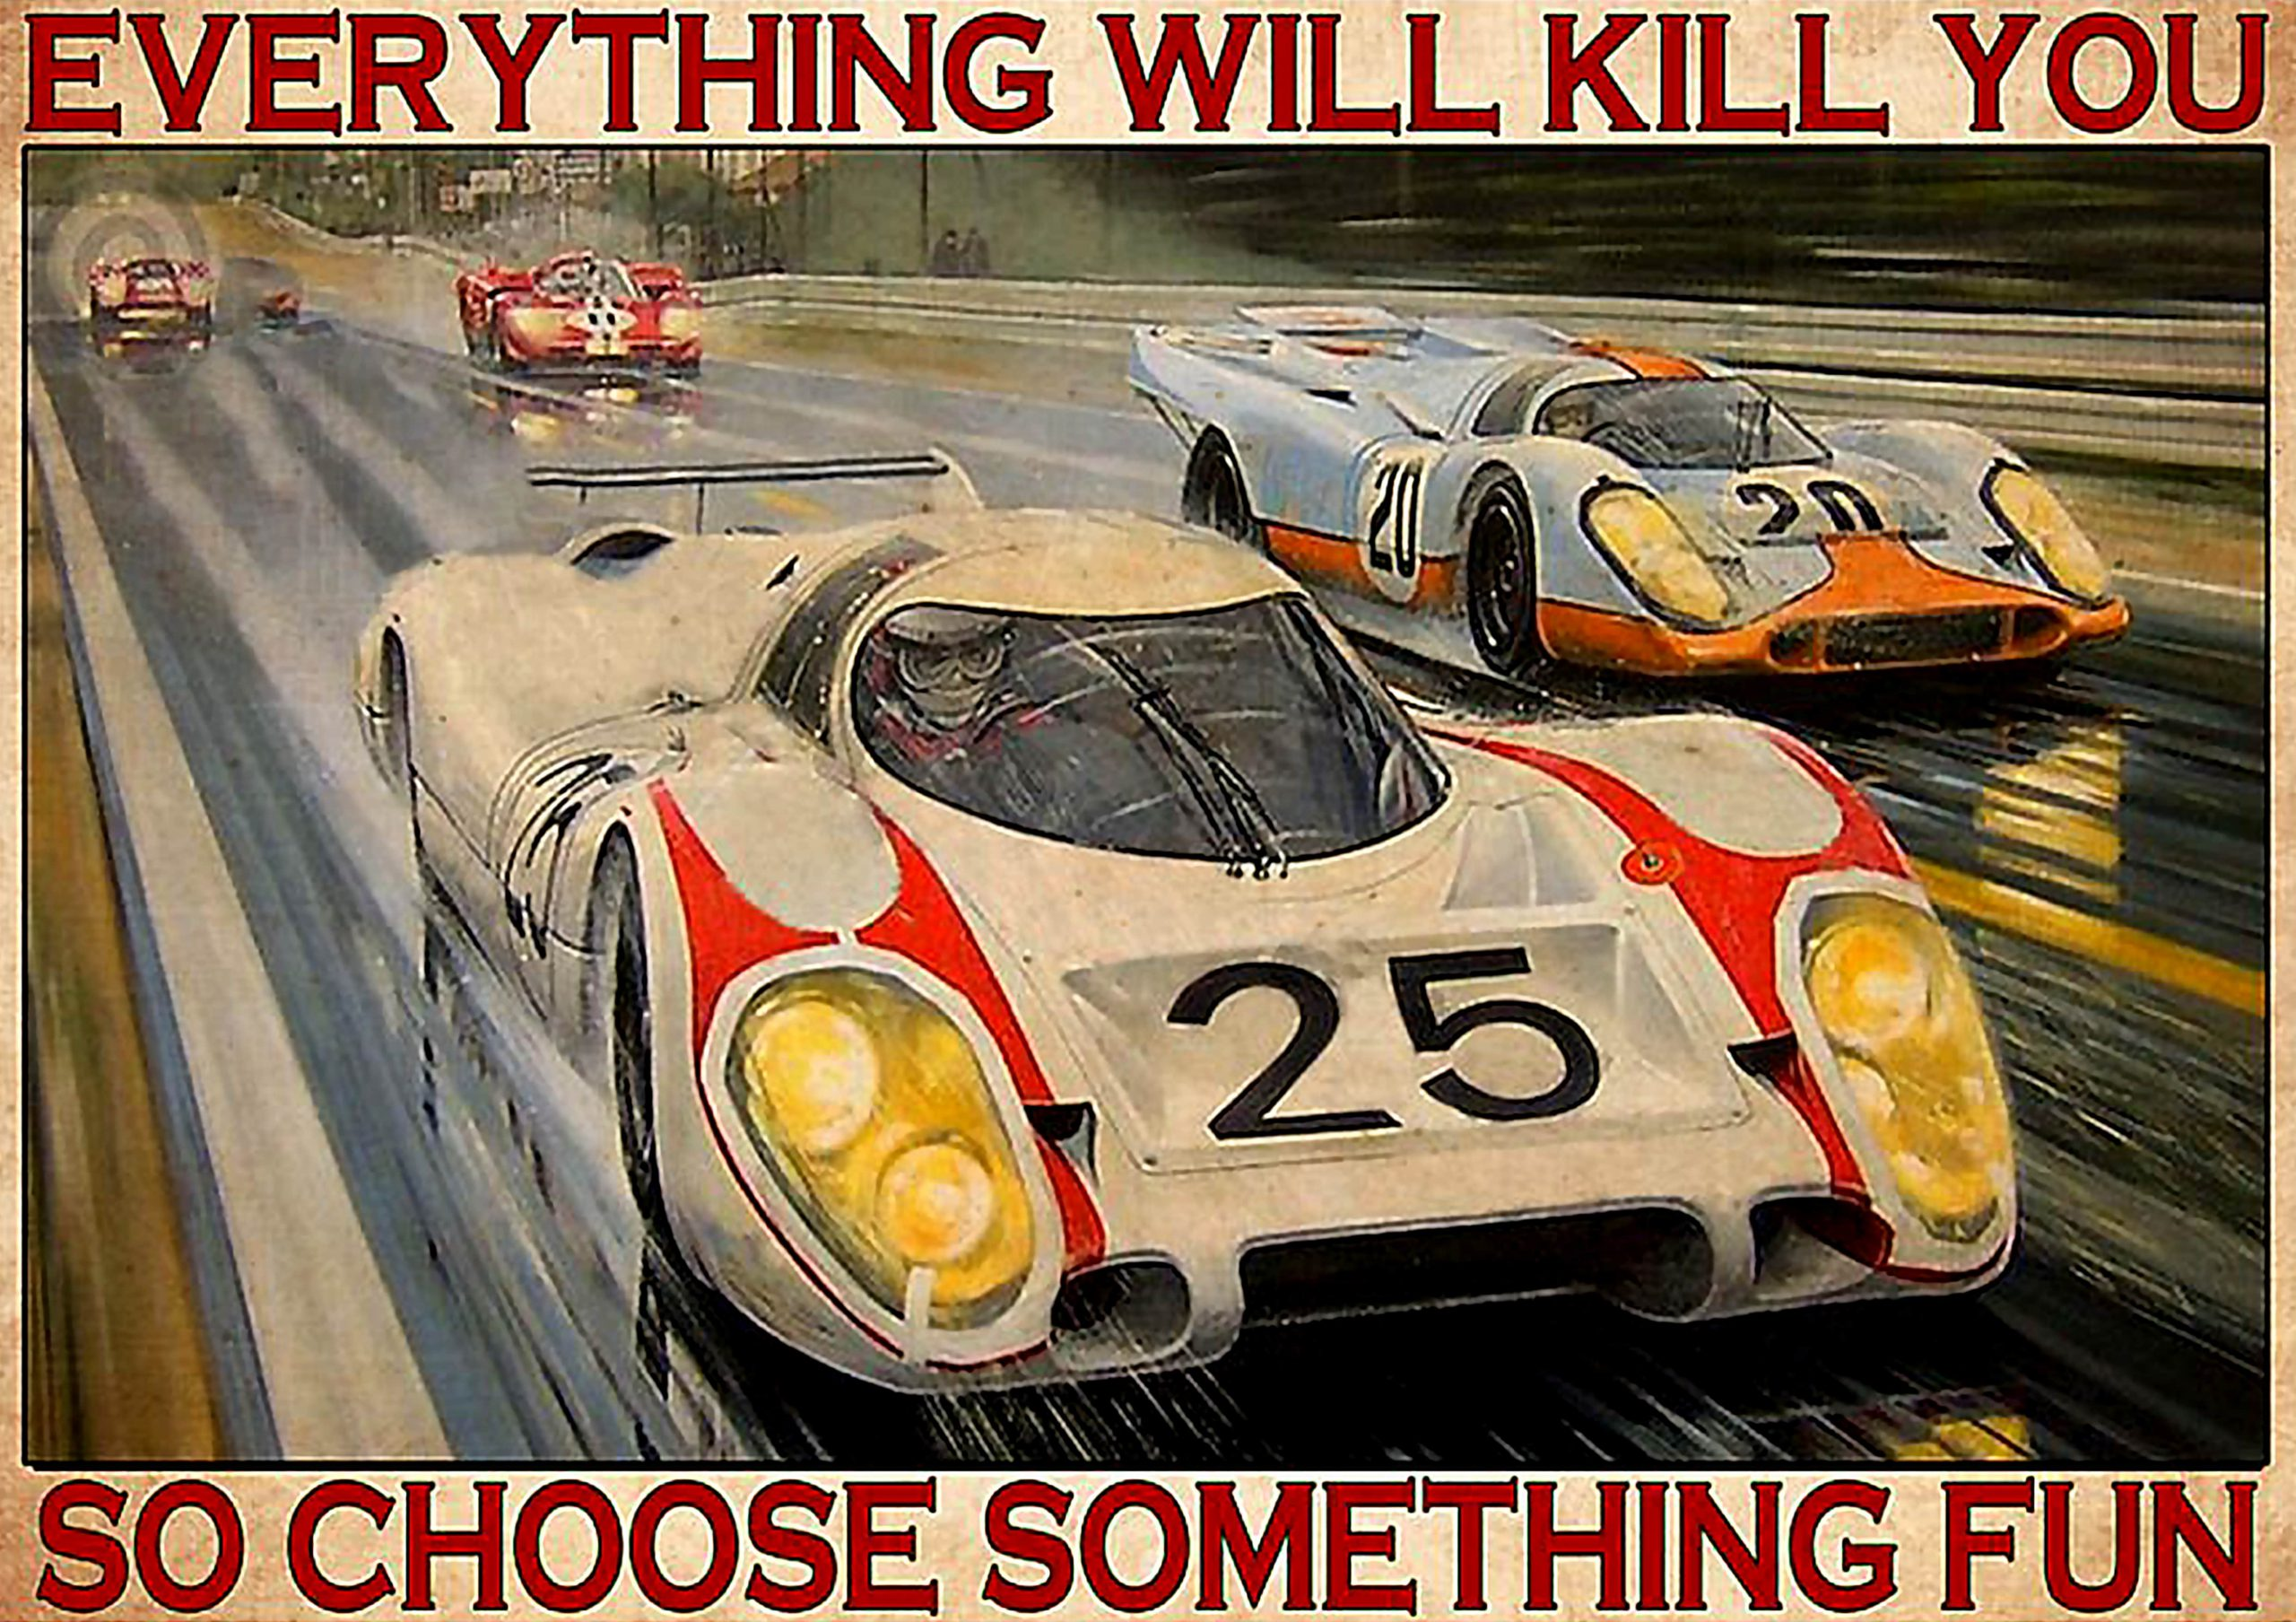 vintage pors 917lh lemans everything will kill you so choose something fun poster 1 - Copy (2)